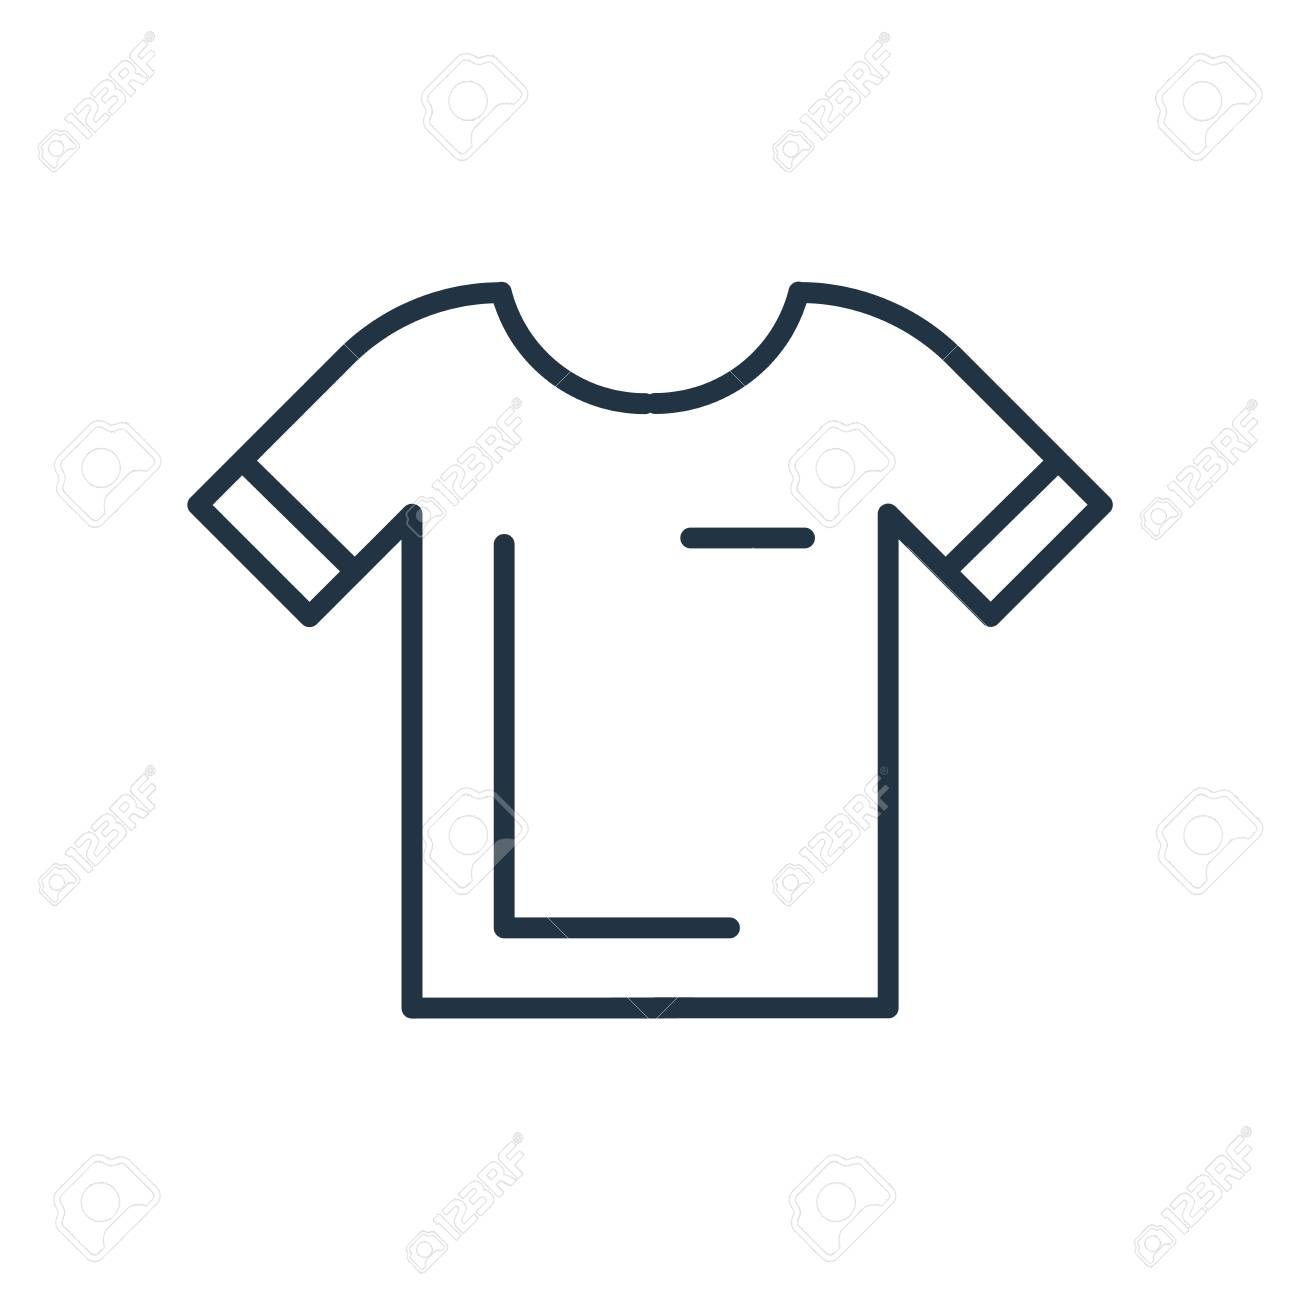 Shirt icon vector isolated on white background, Shirt transparent sign - 111849763